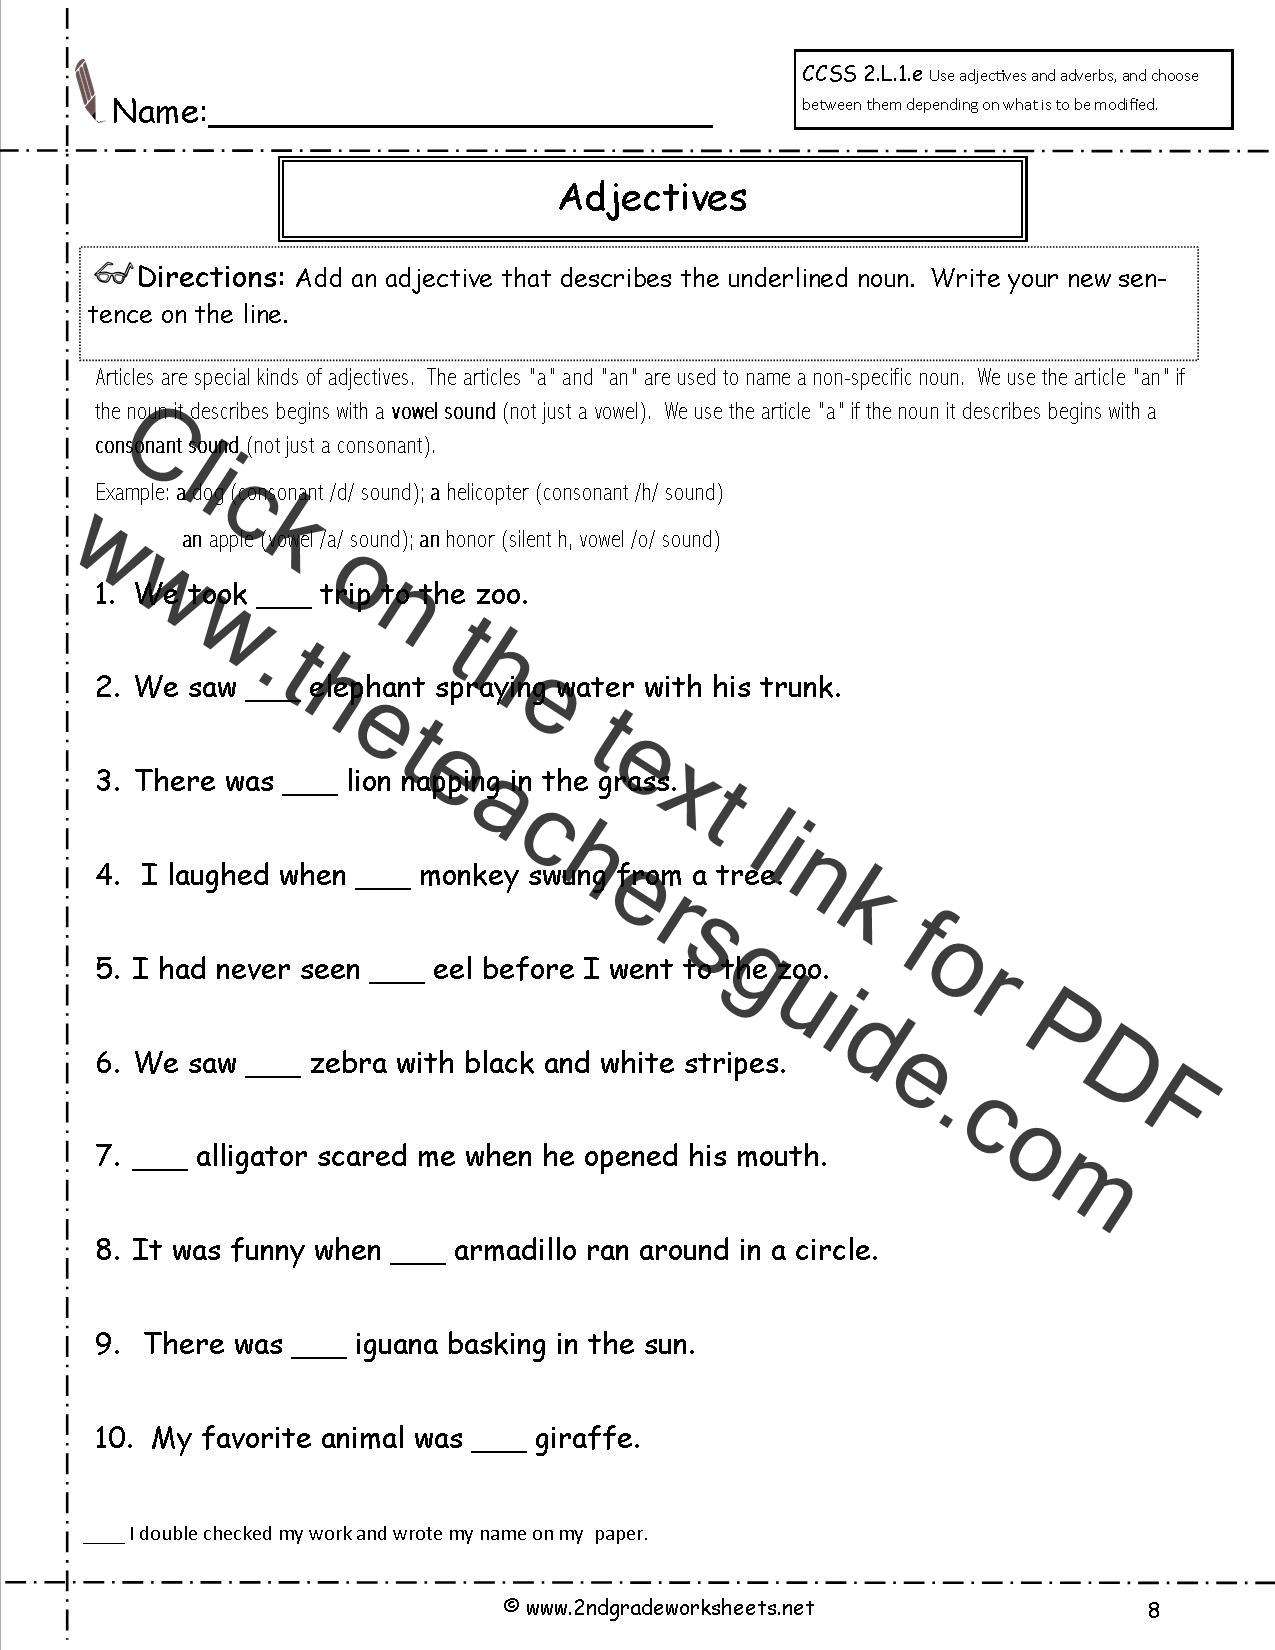 Proper Adjectives Worksheets Grade Beautiful Best Of Printable as well  furthermore  besides Adjectives Worksheets For Grade 7 Basic Adjective Worksheet moreover More And Most Adjectives Worksheets  parative Limiting For Grade in addition Free Using Adjectives and Adverbs Worksheets in addition Adjectives Worksheets   Have Fun Teaching as well Adjective Worksheets   edHelper further demonstrative adjectives worksheets also  also Adjective Worksheets as well Adjectives Worksheets for Grade 1 Best Of Grade 4 Grammar Lesson 10 in addition Adjective Worksheets Grade Irregular Verbs Lesson Plans Beautiful 7 additionally Free Using Adjectives and Adverbs Worksheets furthermore adjectives worksheets for grade 1 besides grade 1  S le worksheets on nouns   verbs and adjectives. on adjectives worksheets for grade 1